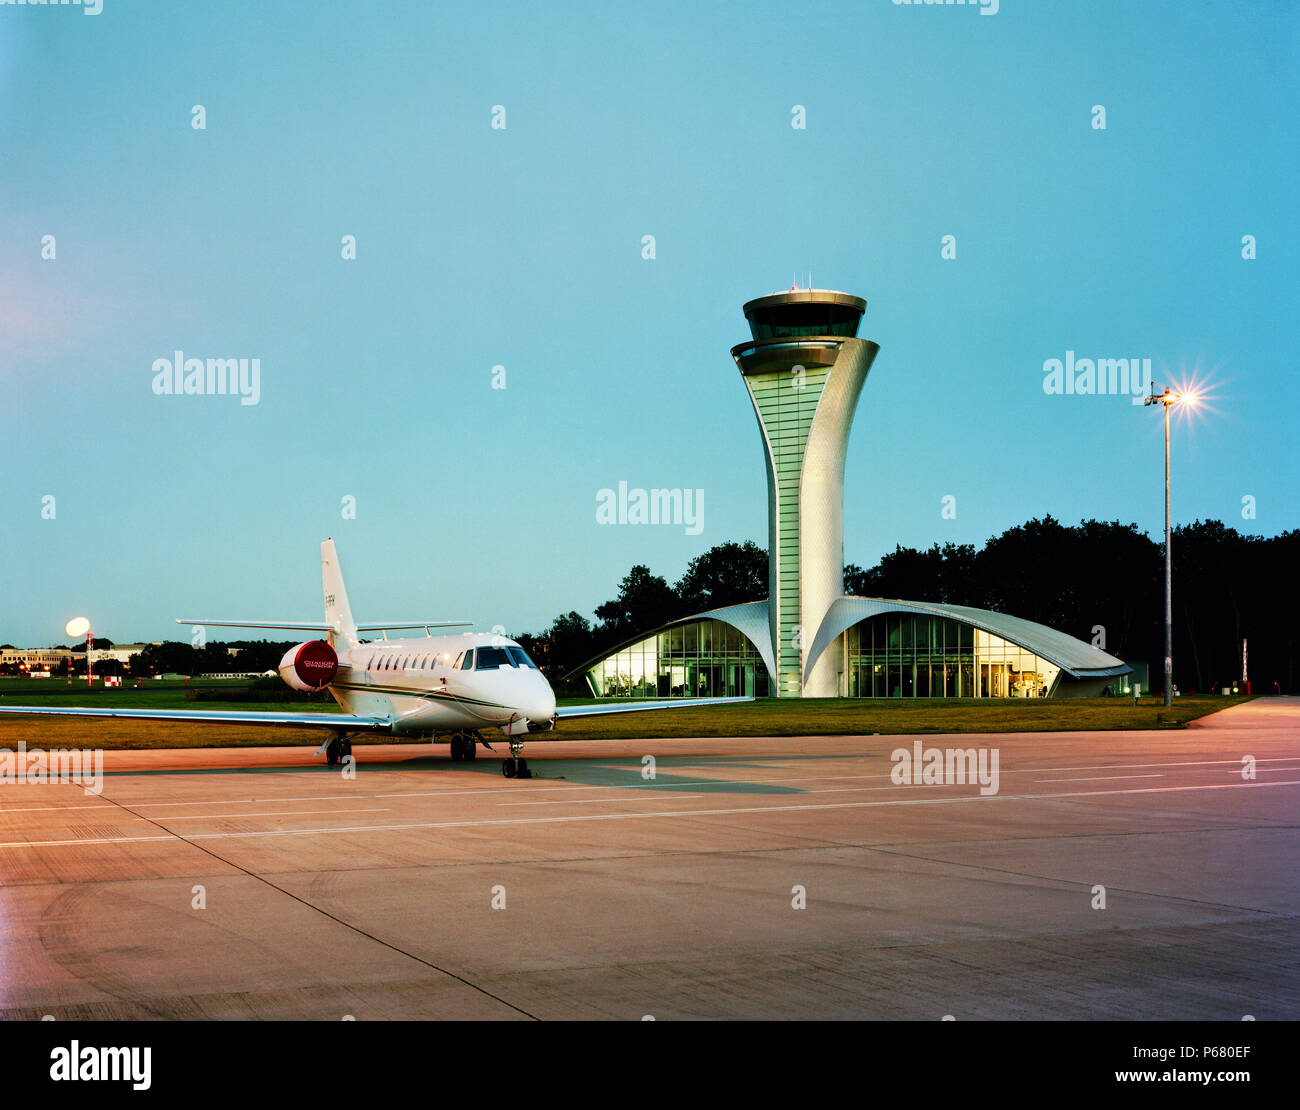 The tower of Farnborough airport with parked airoplane. Designed by 3d reid architects. - Stock Image